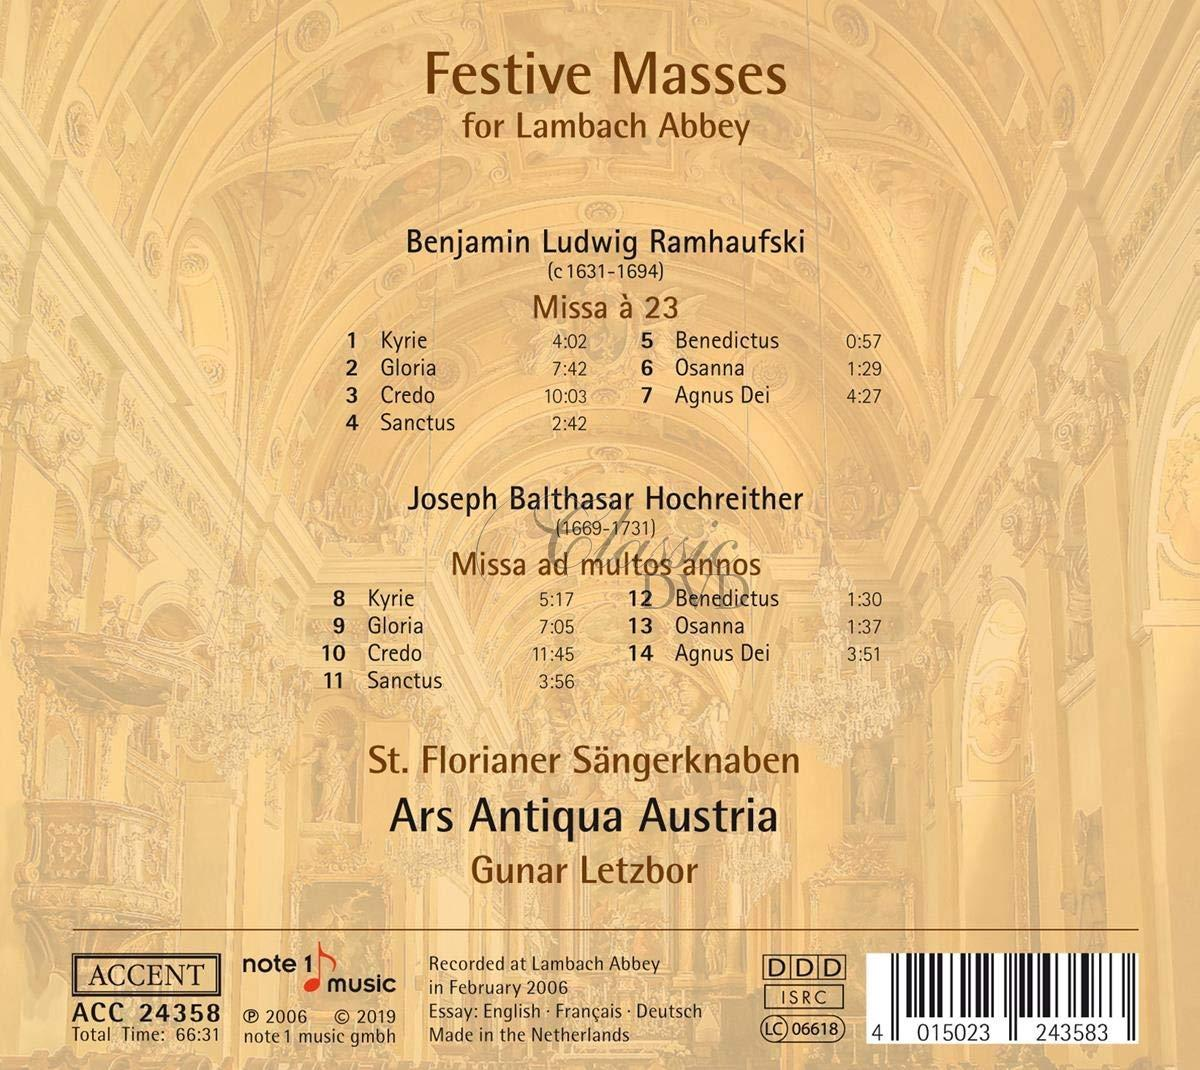 Ramhaufski / Hochreither: Festive Masses (CD)